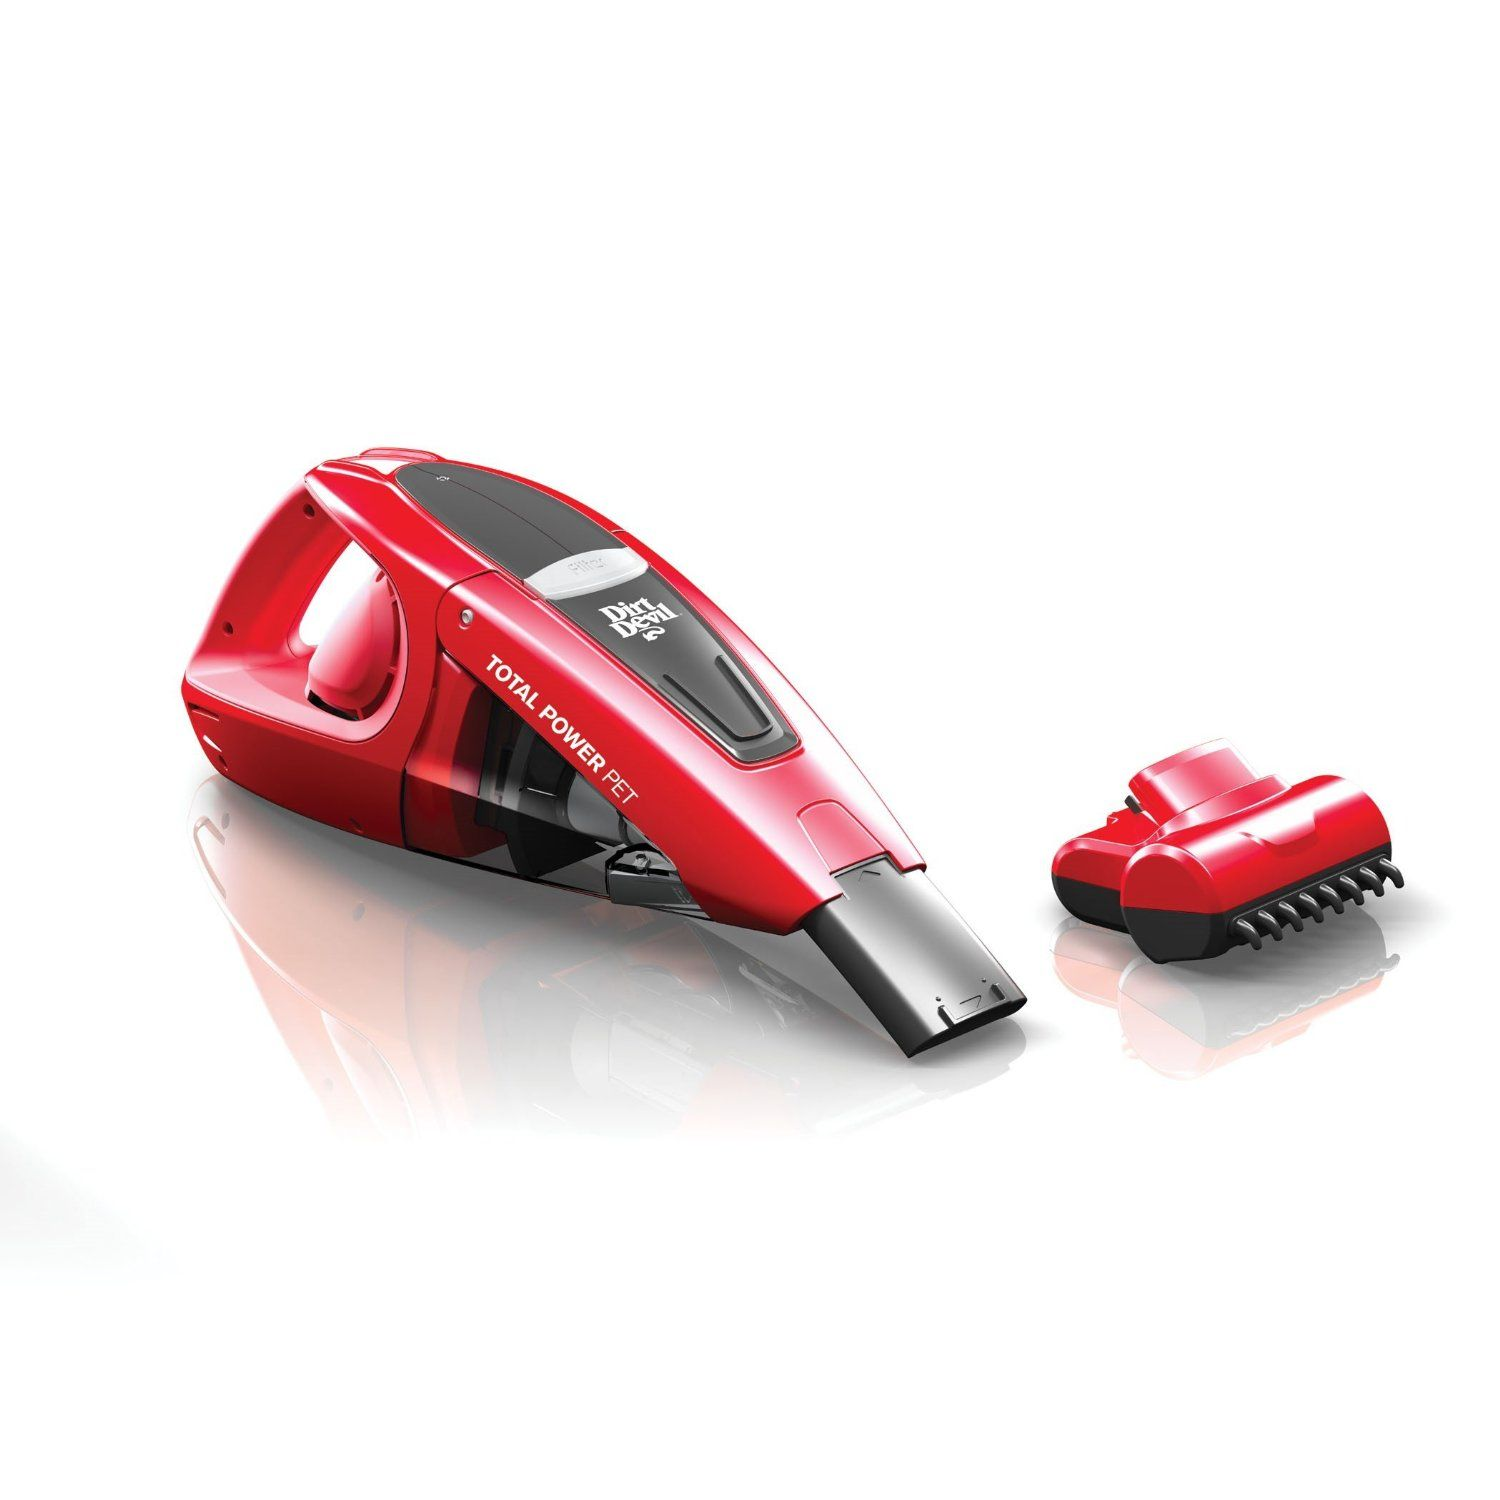 Dirt Devil Bd10167 Total Power Pet 15 6v Bagless Cordless Hand